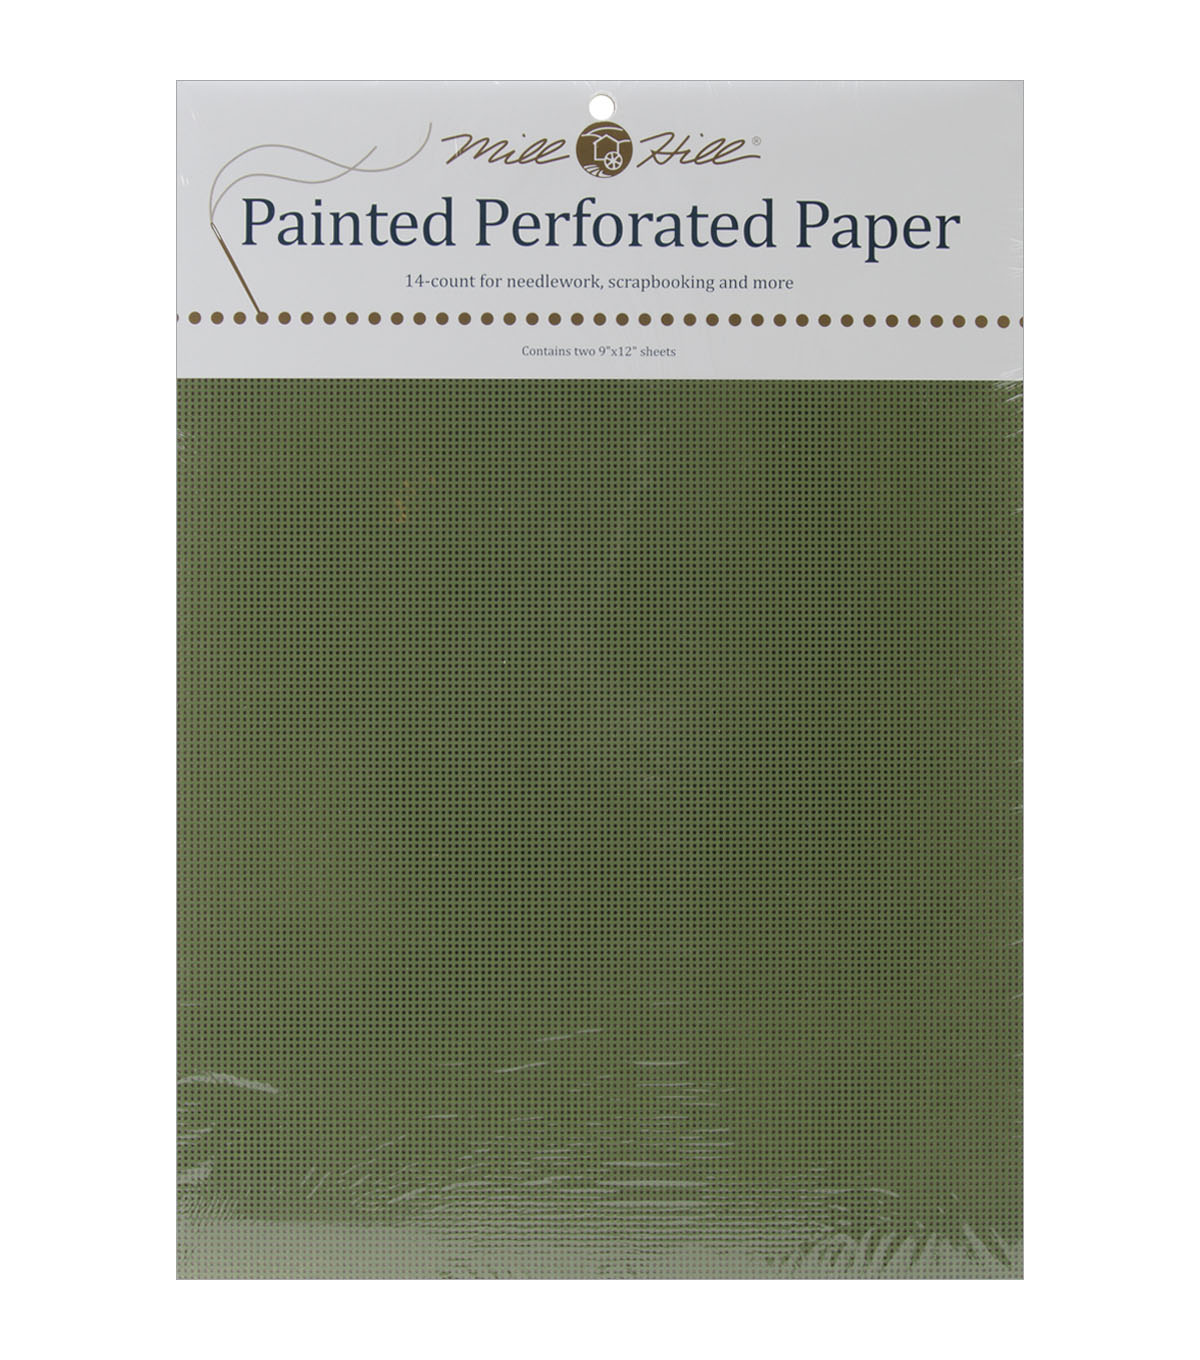 Mill Hill Painted Perforated Paper Pack 14 Count